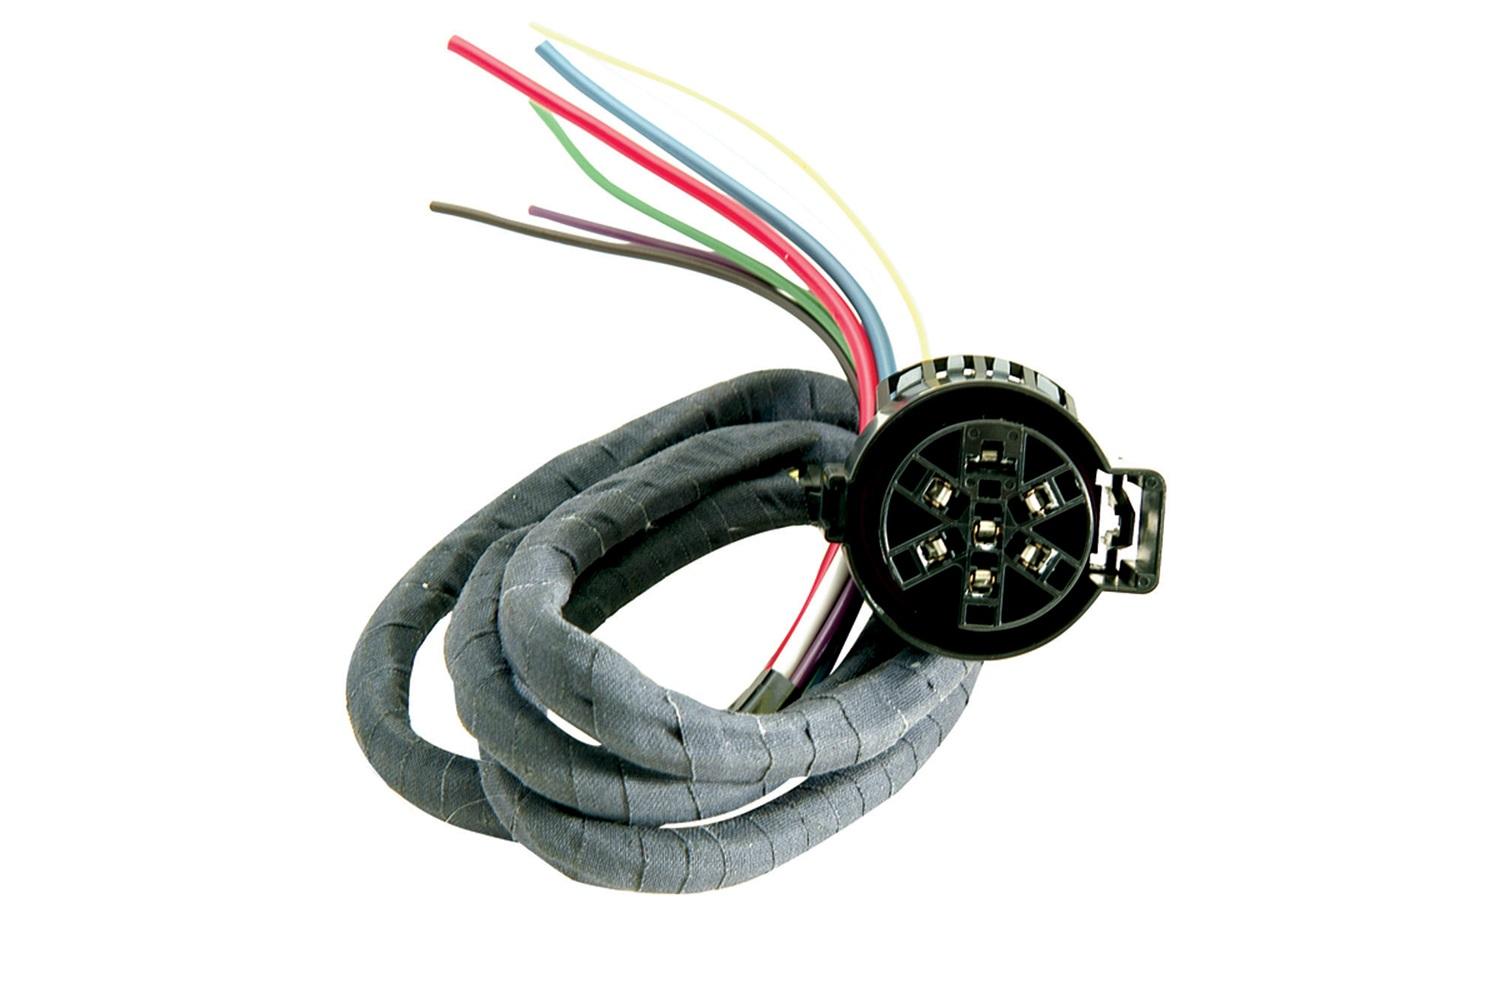 hopkins wiring harnesses towing solutions trailer harness kit 2002 dodge stratus radio diagram solution 40985 wire connector